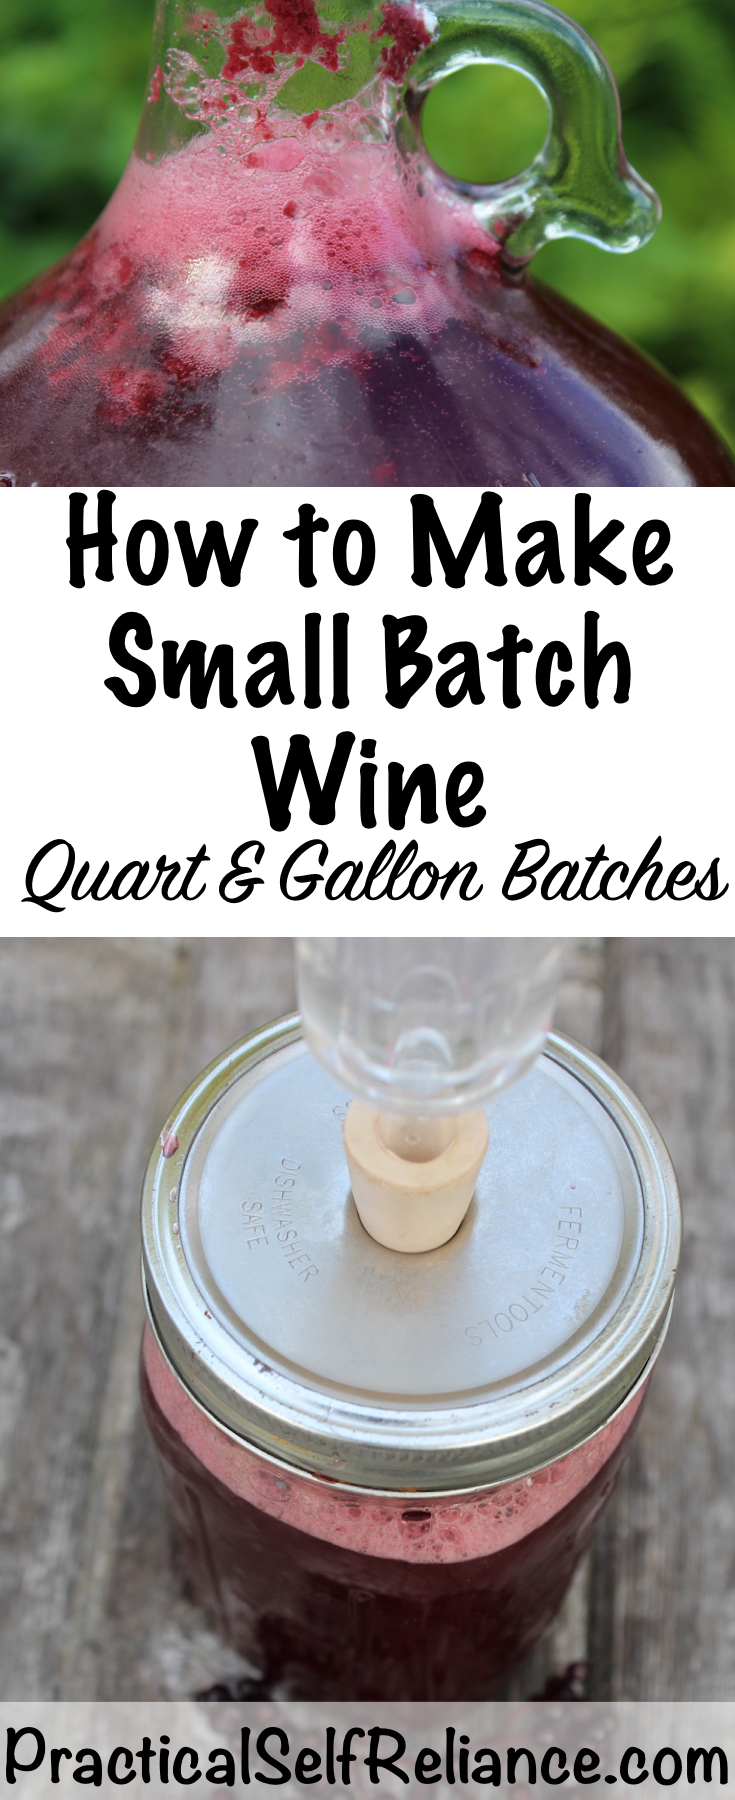 How to Make Small Batch Wine ~ Batch sizes from 1 quart to 1 gallon